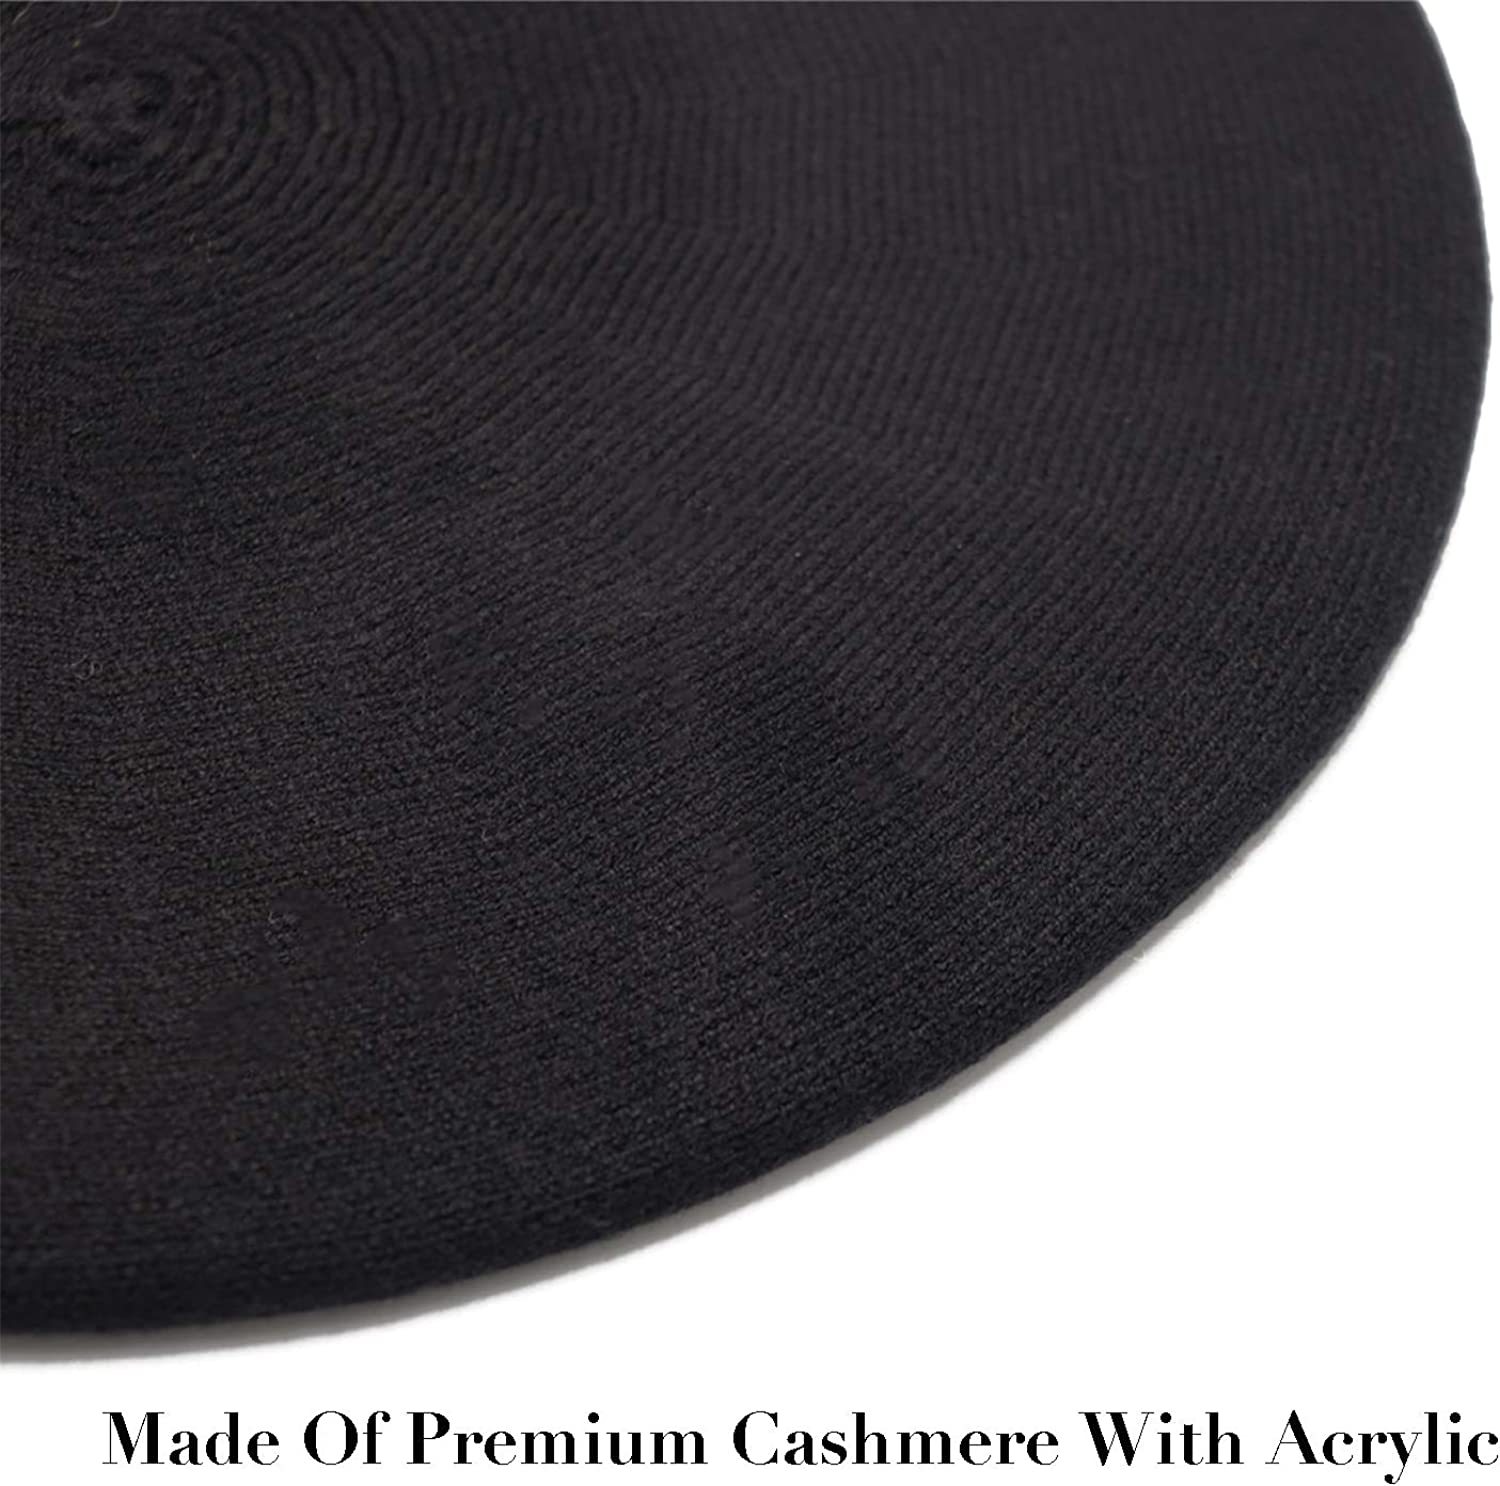 Sydbecs Cashmere Beret Hats for Women Girls, Reversible French Berets Hat Solid Color Style